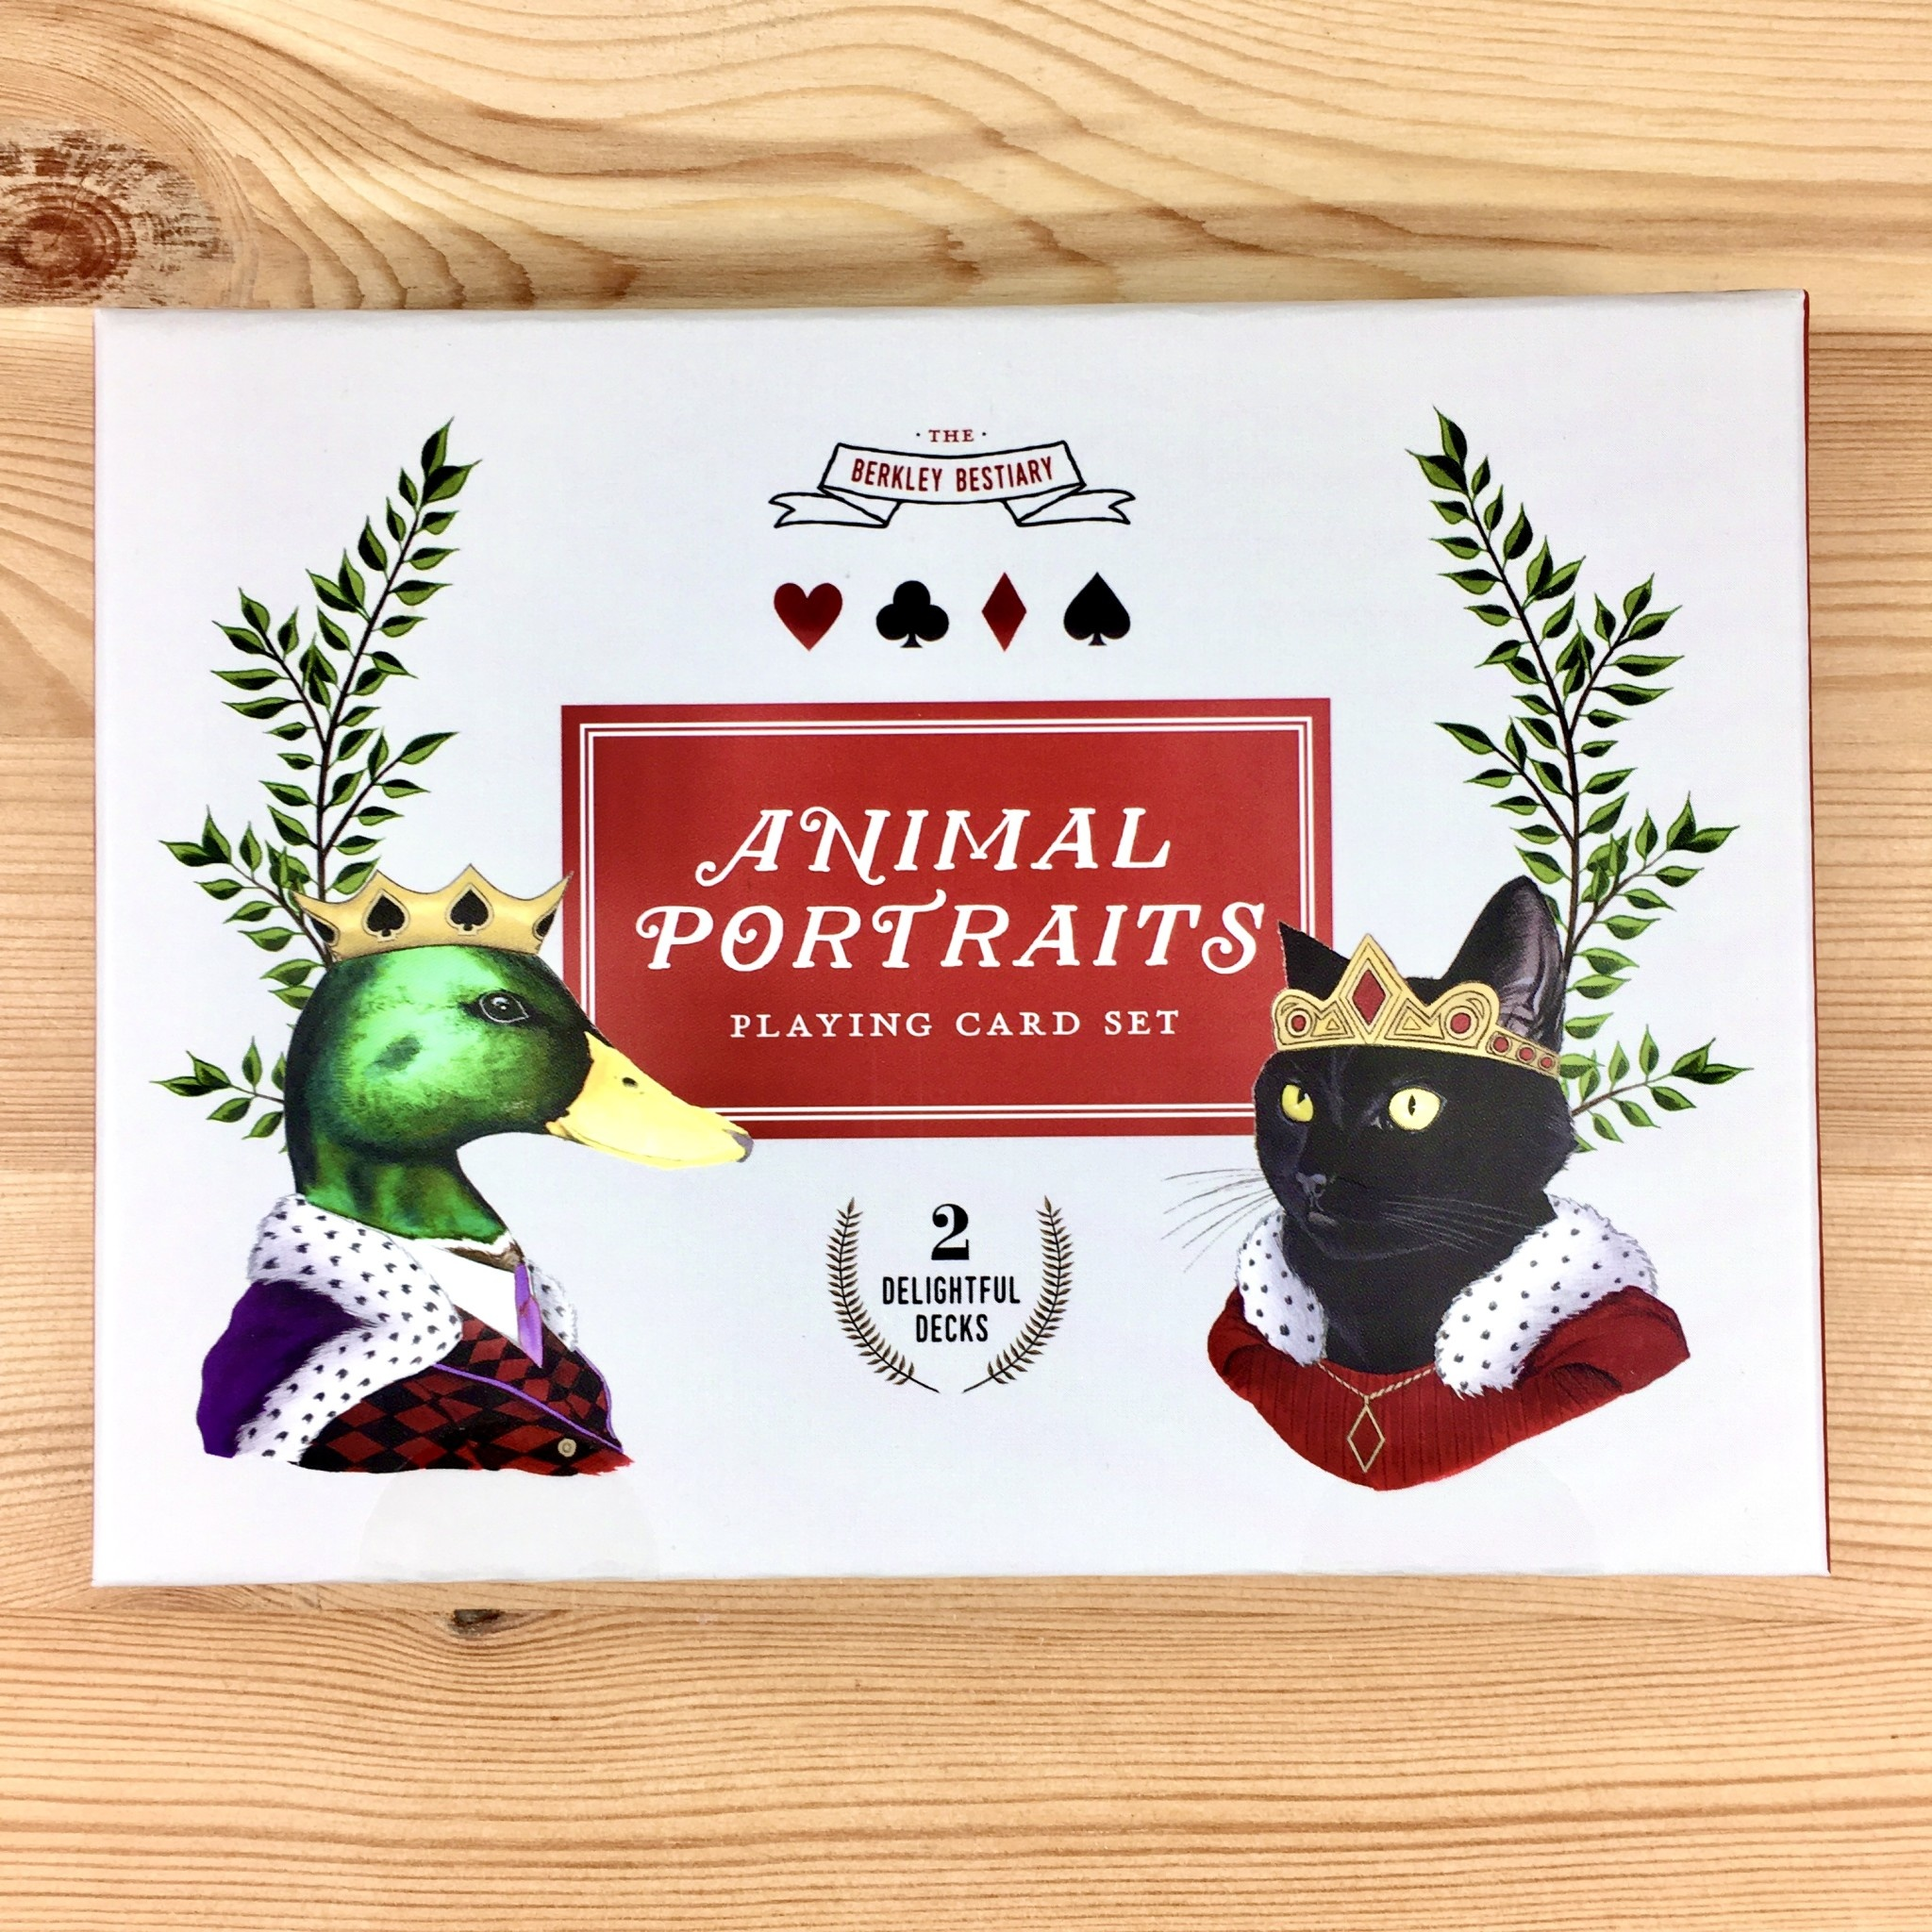 Berkley Illustration / Ryan Berkley Animal Portraits Playing Card Set